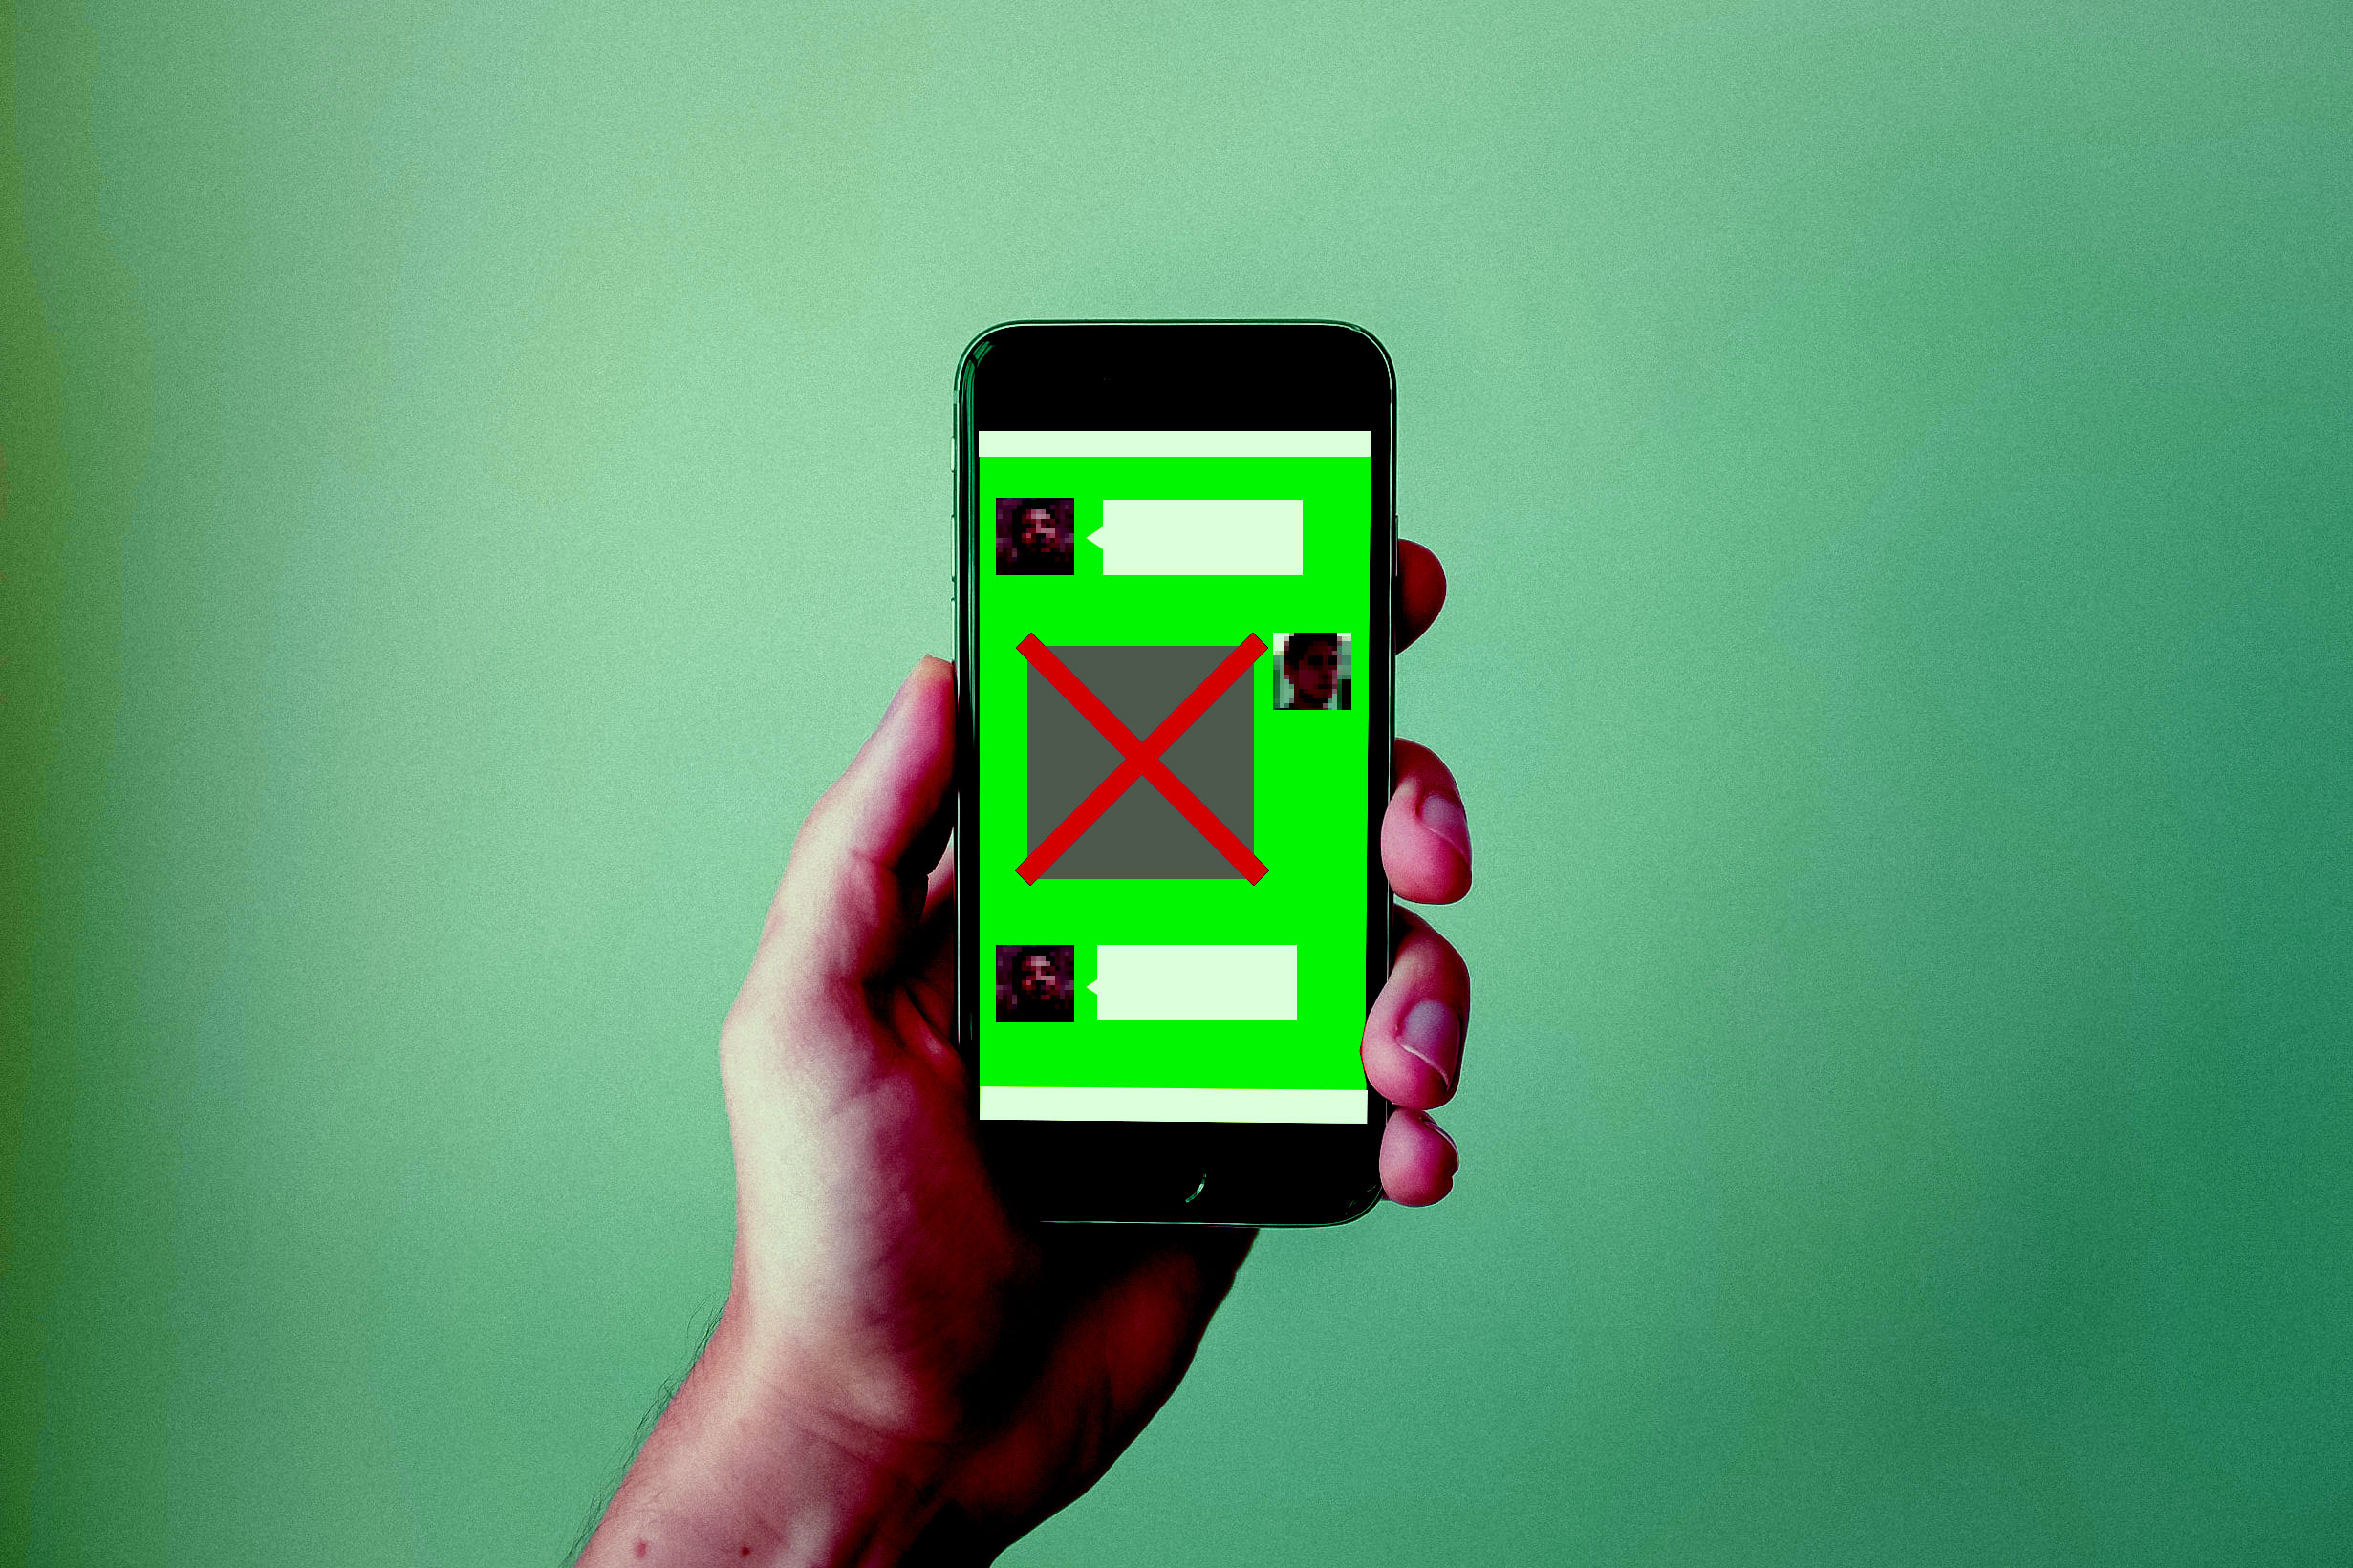 Conceptual illustration of WeChat image censoring